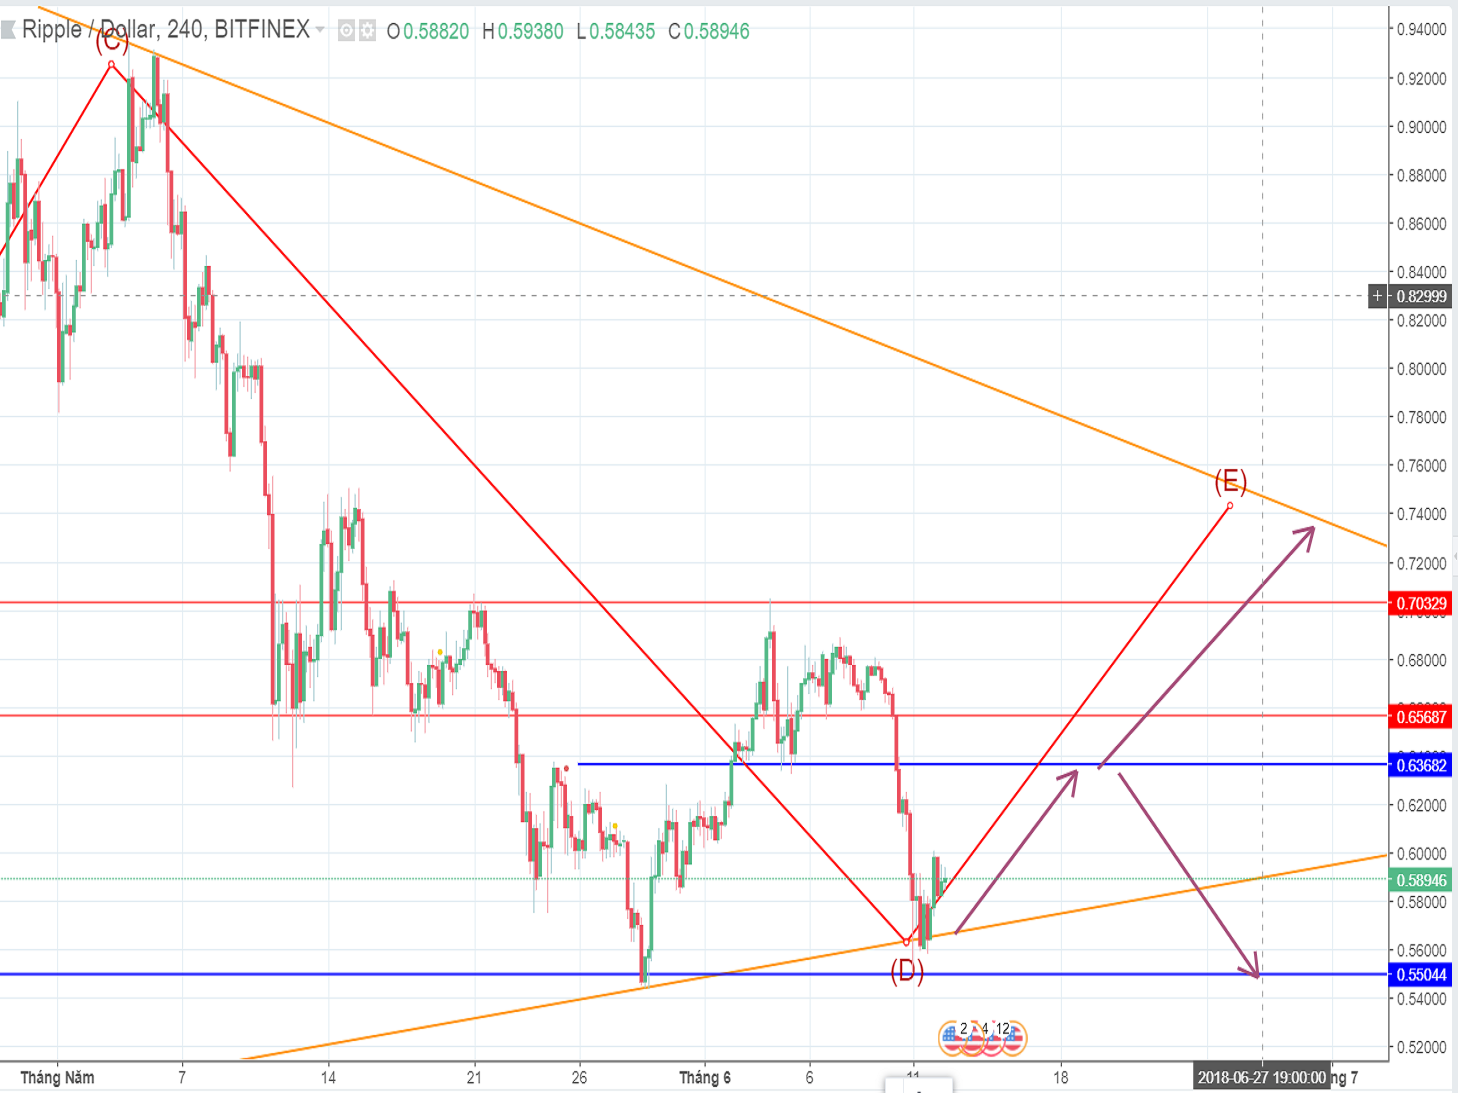 Ripple price (June 12th): More signals ahead